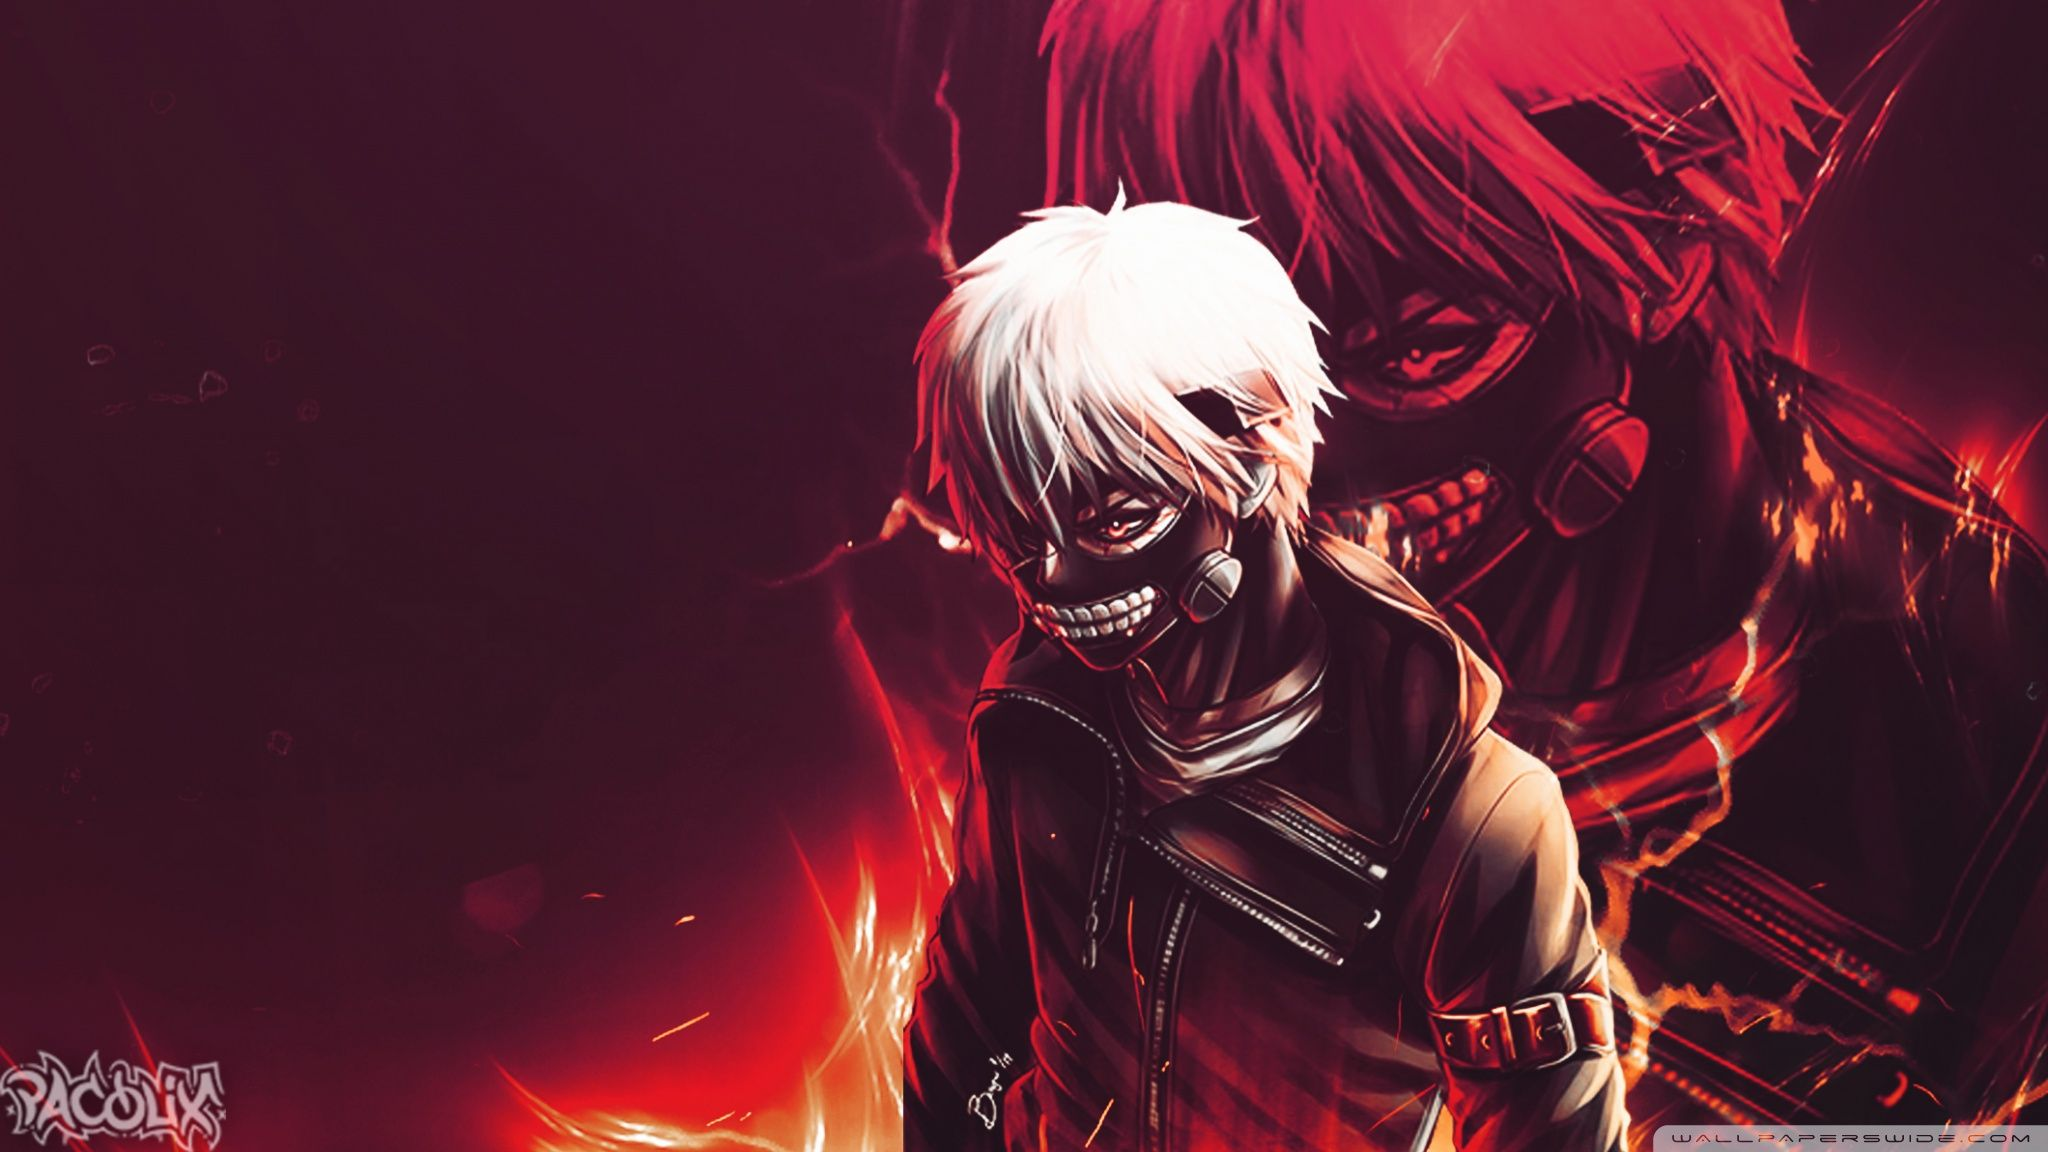 Tokyo Ghoul Wallpaper Photo Tokyo ghoul wallpapers